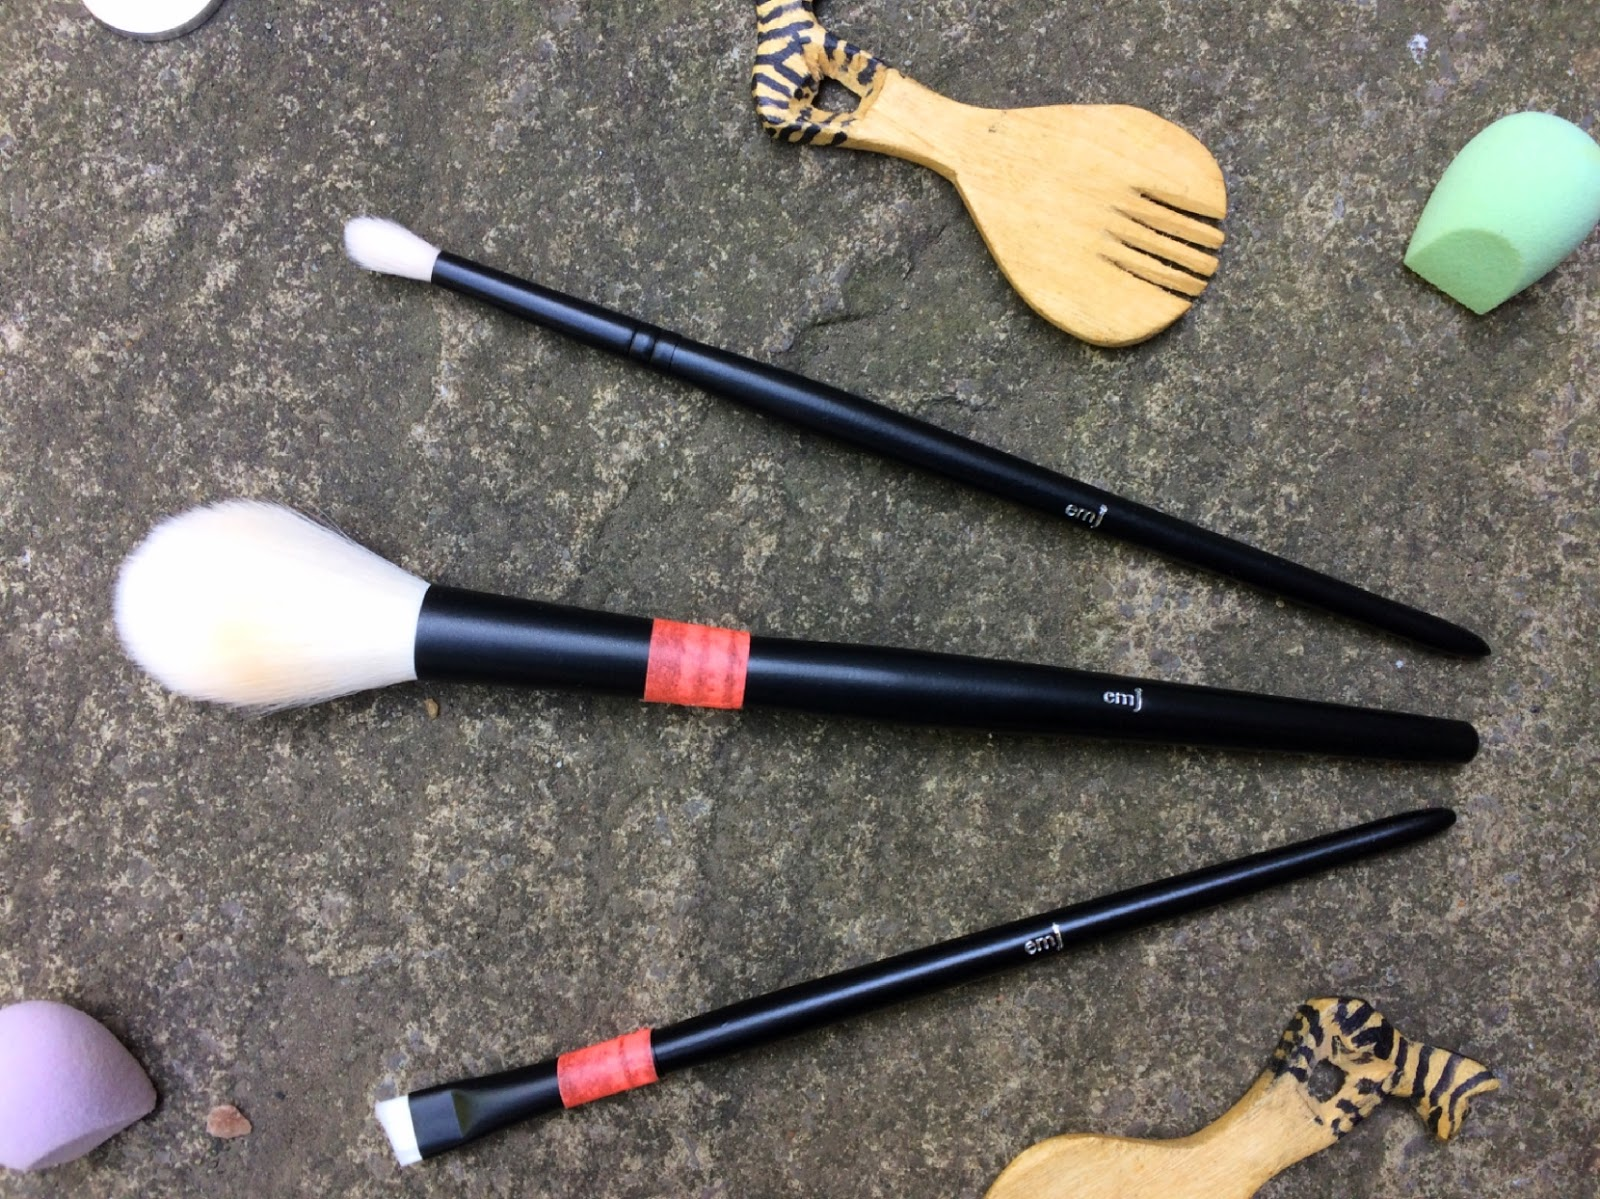 emJ company brushes